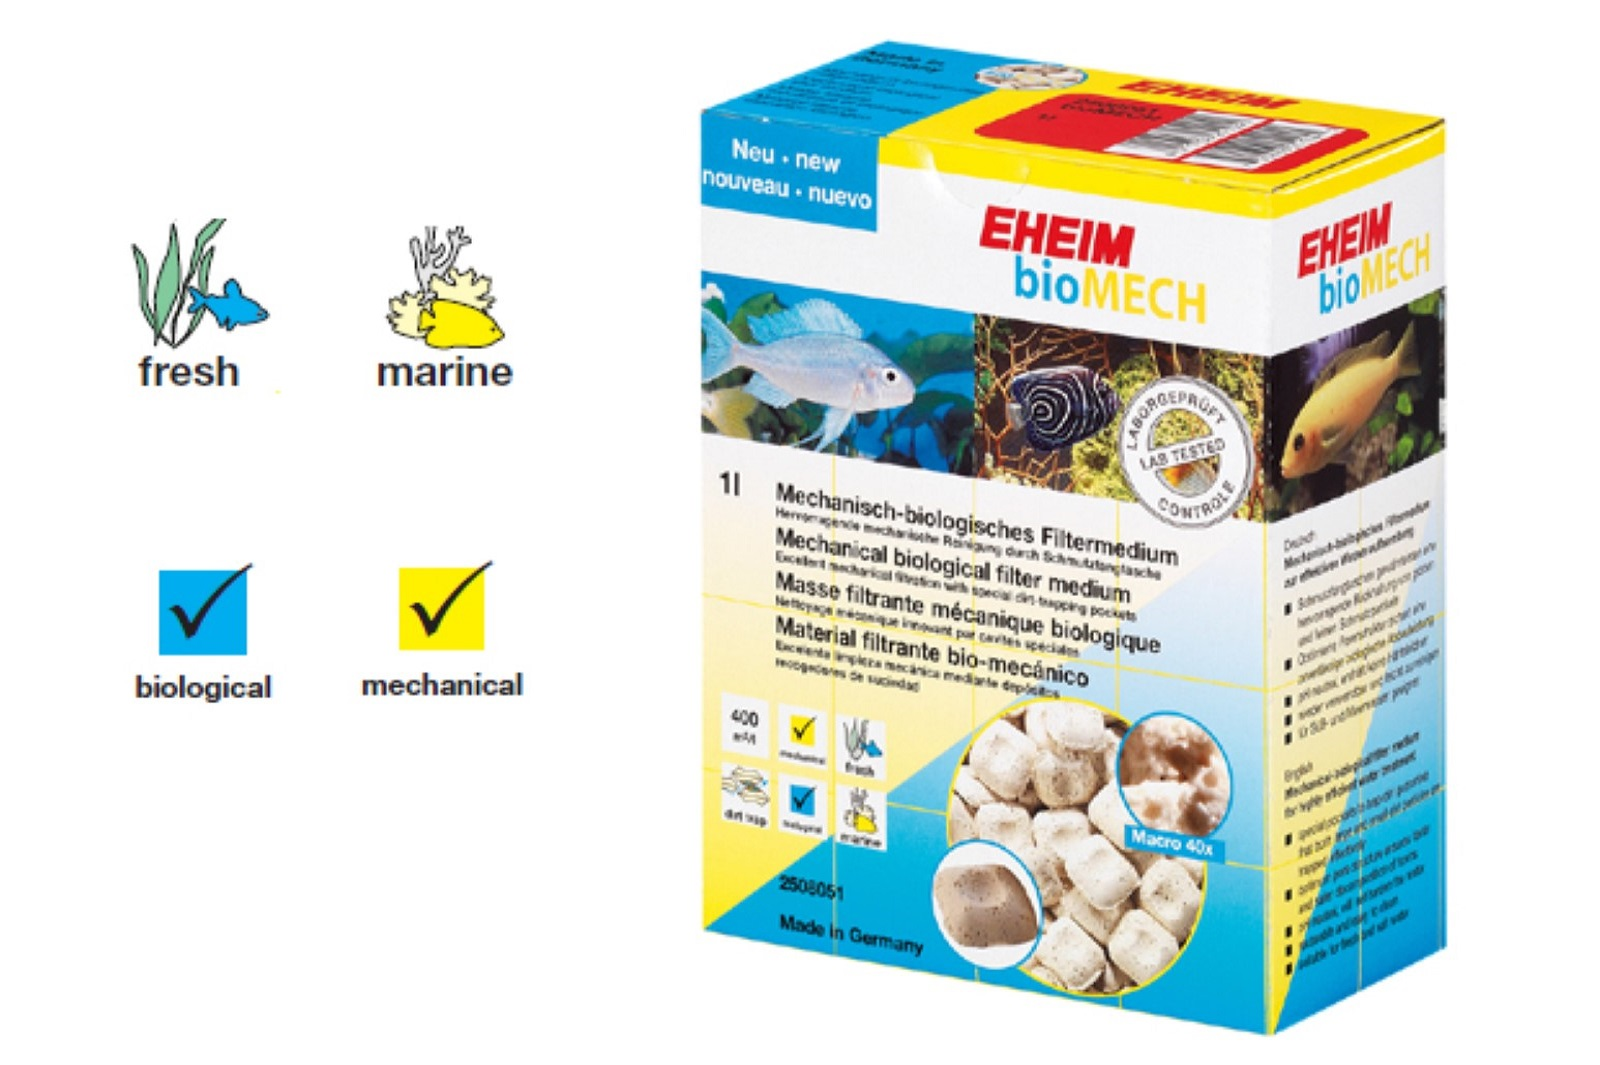 Eheim bioMech mechanisch-biologisches Filtermedium 1 l   Aquarium